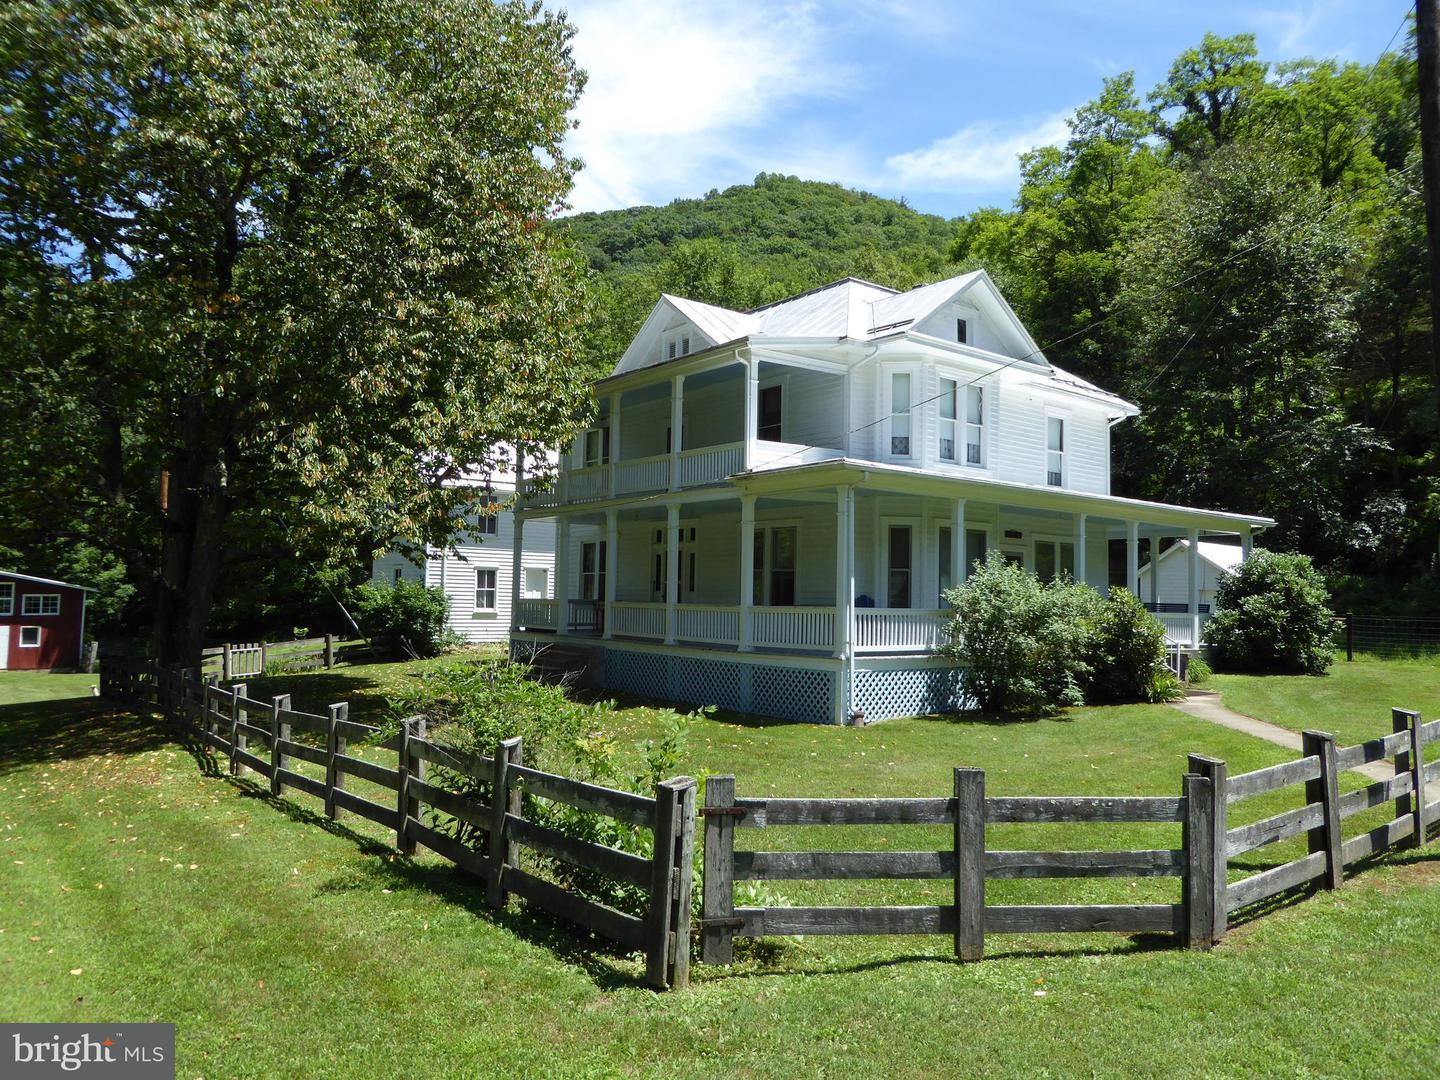 Farm for Sale at 3593 Smith Creek Rd Franklin, West Virginia 26807 United States